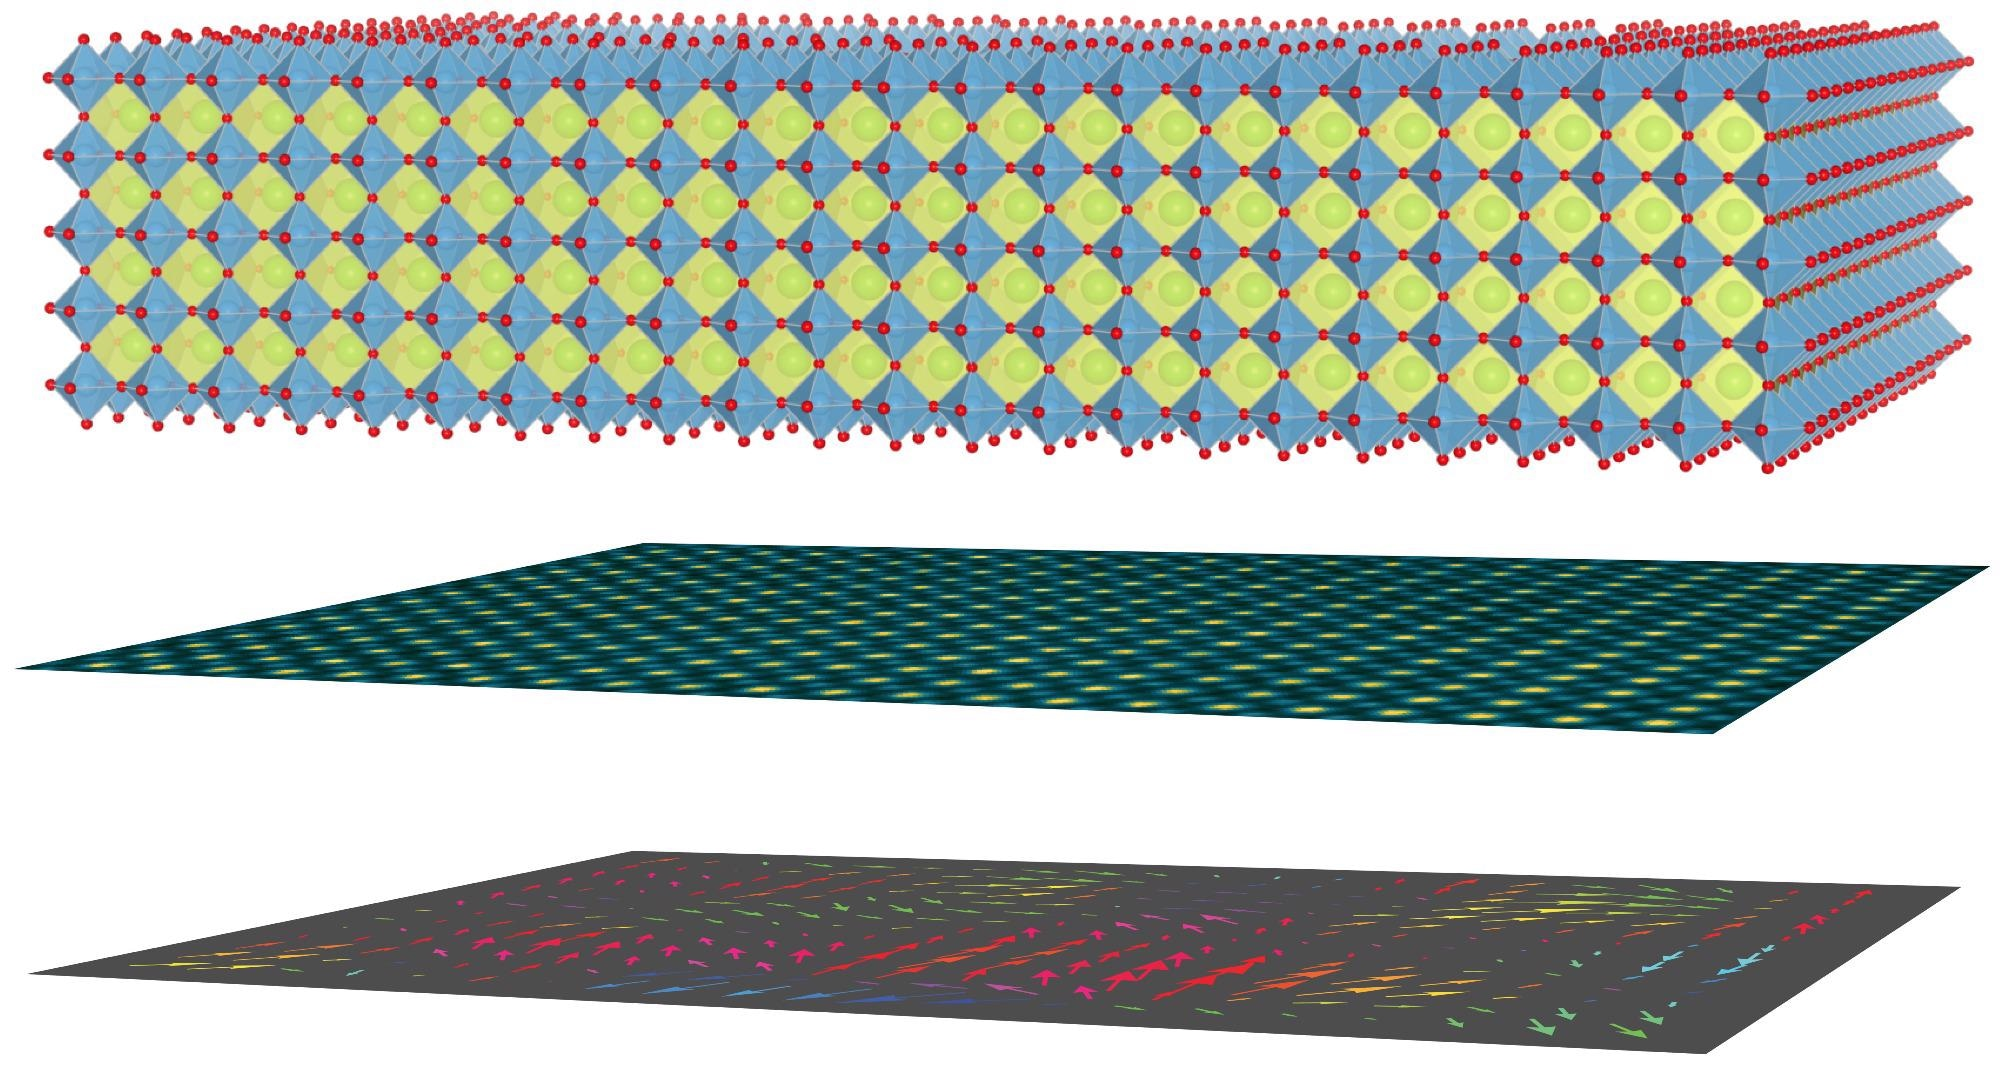 New Study Refutes the Existing Theories on Materials and Their Atomic Structure.